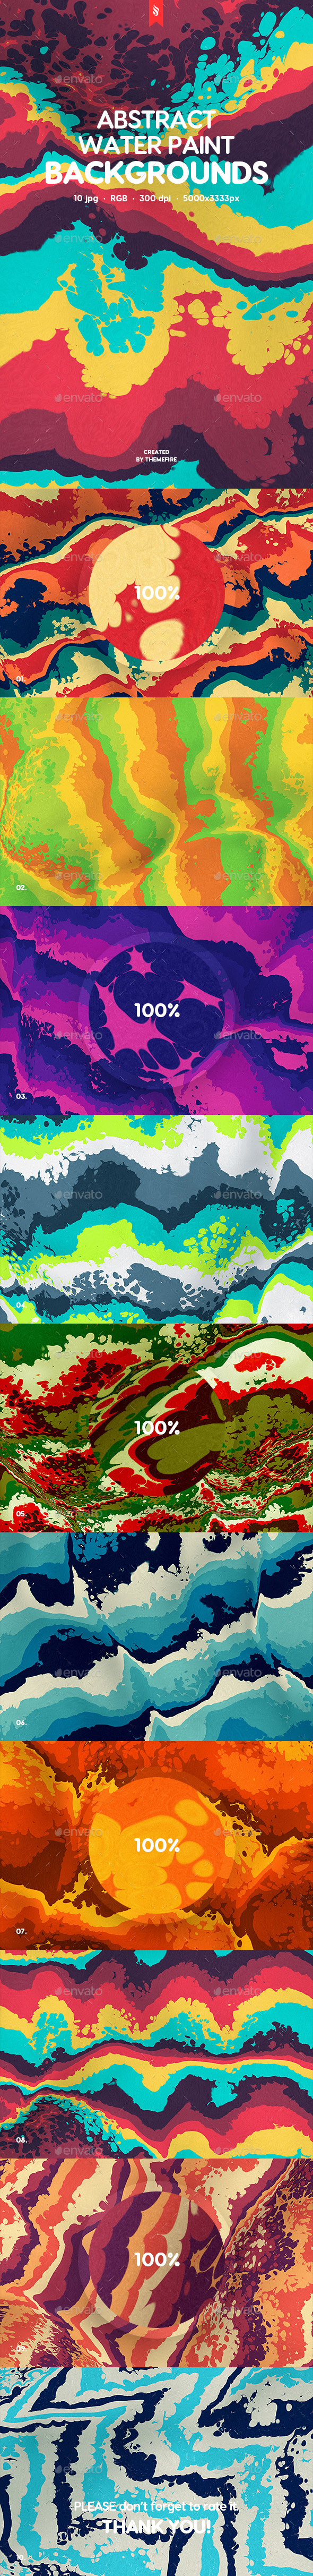 Abstract Water Paint Backgrounds - Abstract Backgrounds